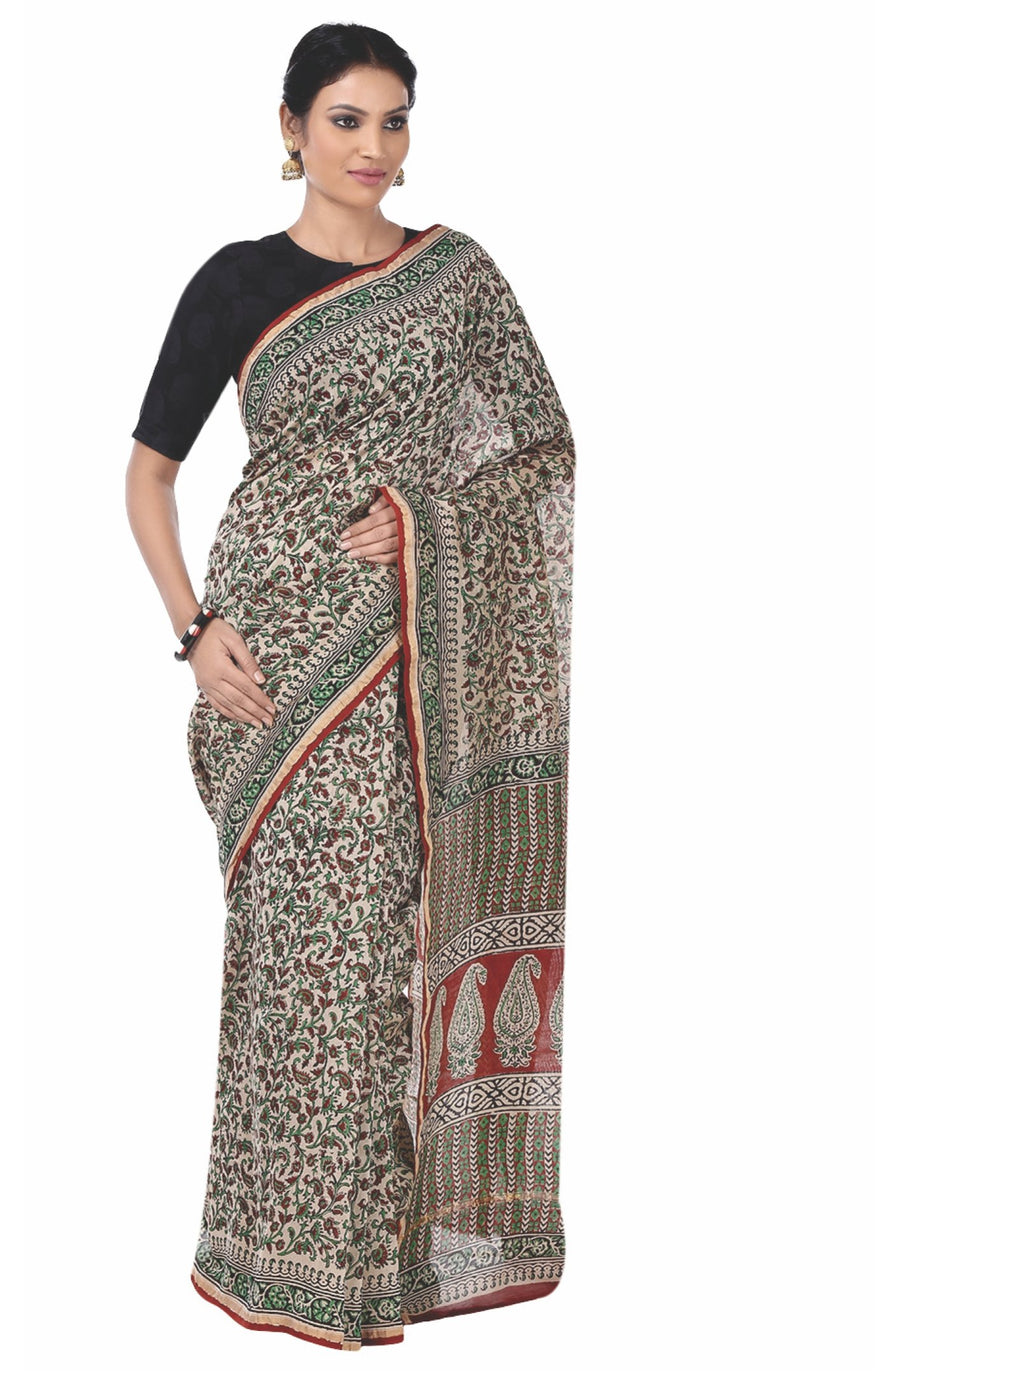 Beige & Maroon Chanderi Silk Kalamkari Hand Block Print Handcrafted Saree-Saree-Kalakari India-RDSNSA0067-Chanderi, Geographical Indication, Hand Blocks, Hand Crafted, Heritage Prints, Kalamkari Block, sarees, Silk, Sustainable Fabrics-[Linen,Ethnic,wear,Fashionista,Handloom,Handicraft,Indigo,blockprint,block,print,Cotton,Chanderi,Blue, latest,classy,party,bollywood,trendy,summer,style,traditional,formal,elegant,unique,style,hand,block,print, dabu,booti,gift,present,glamorous,affordable,collecti